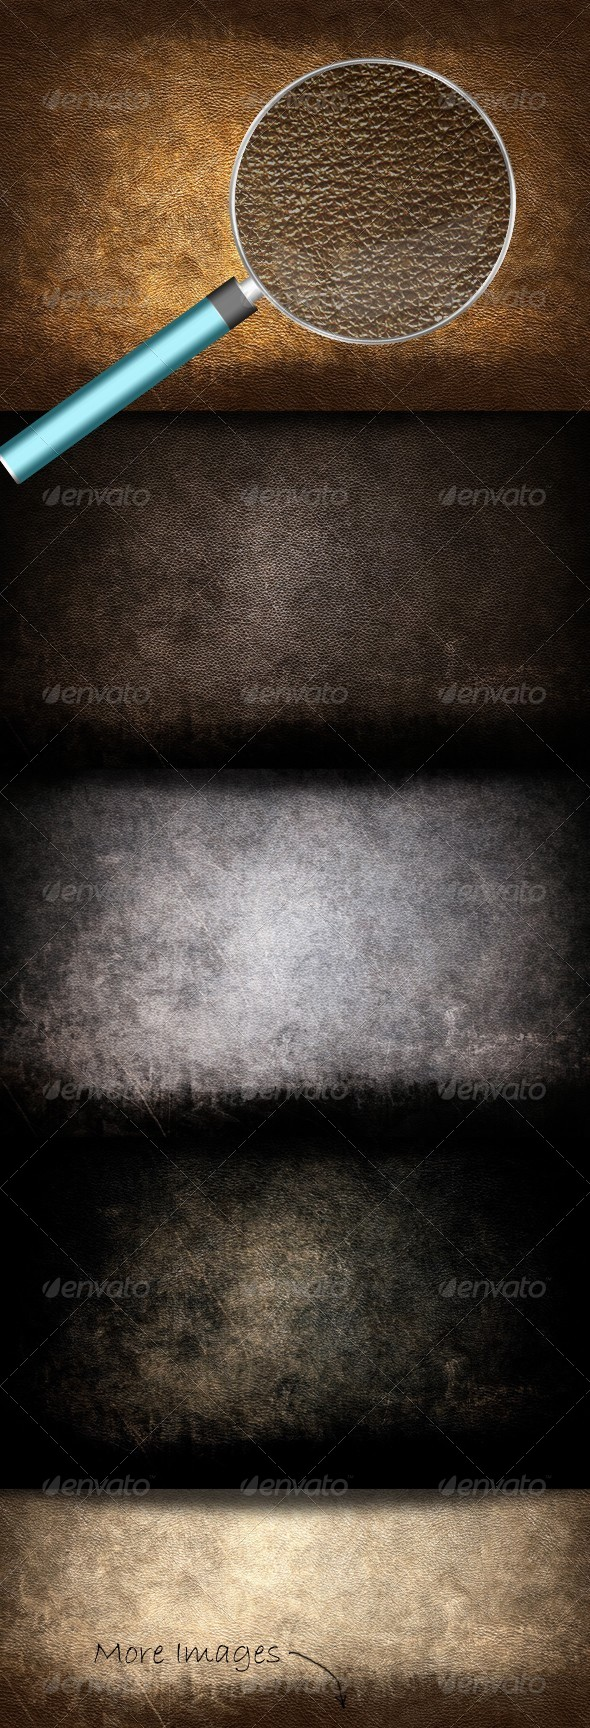 Grunge Leather Textures by GrDezign